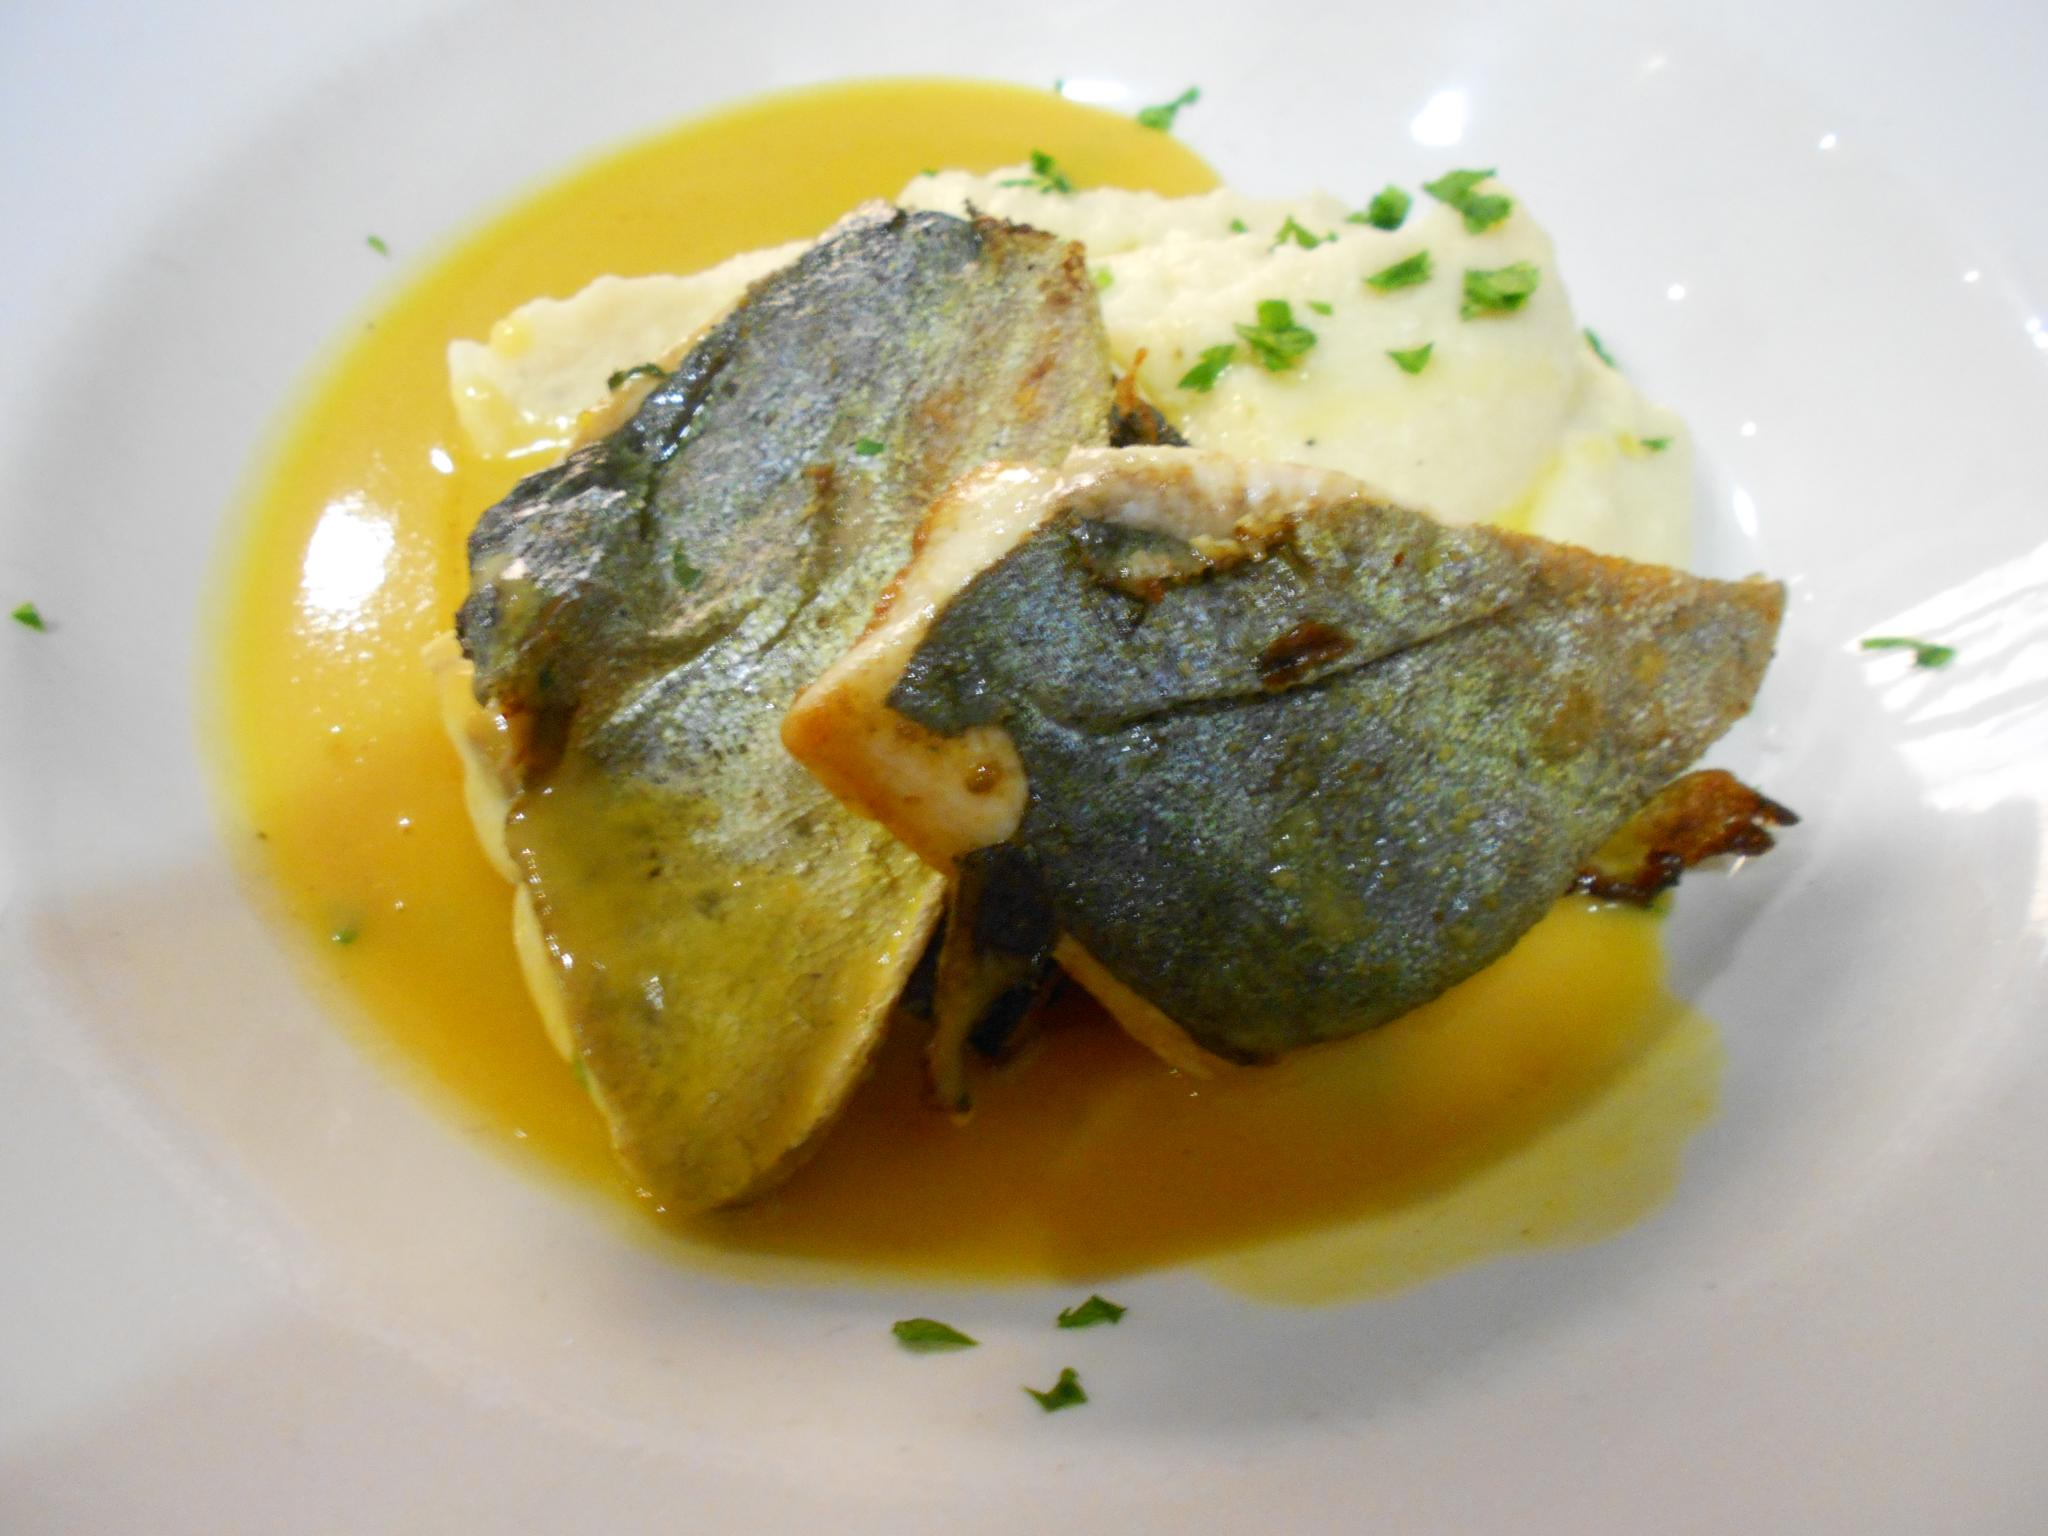 The llampuga fillets with orange sauce